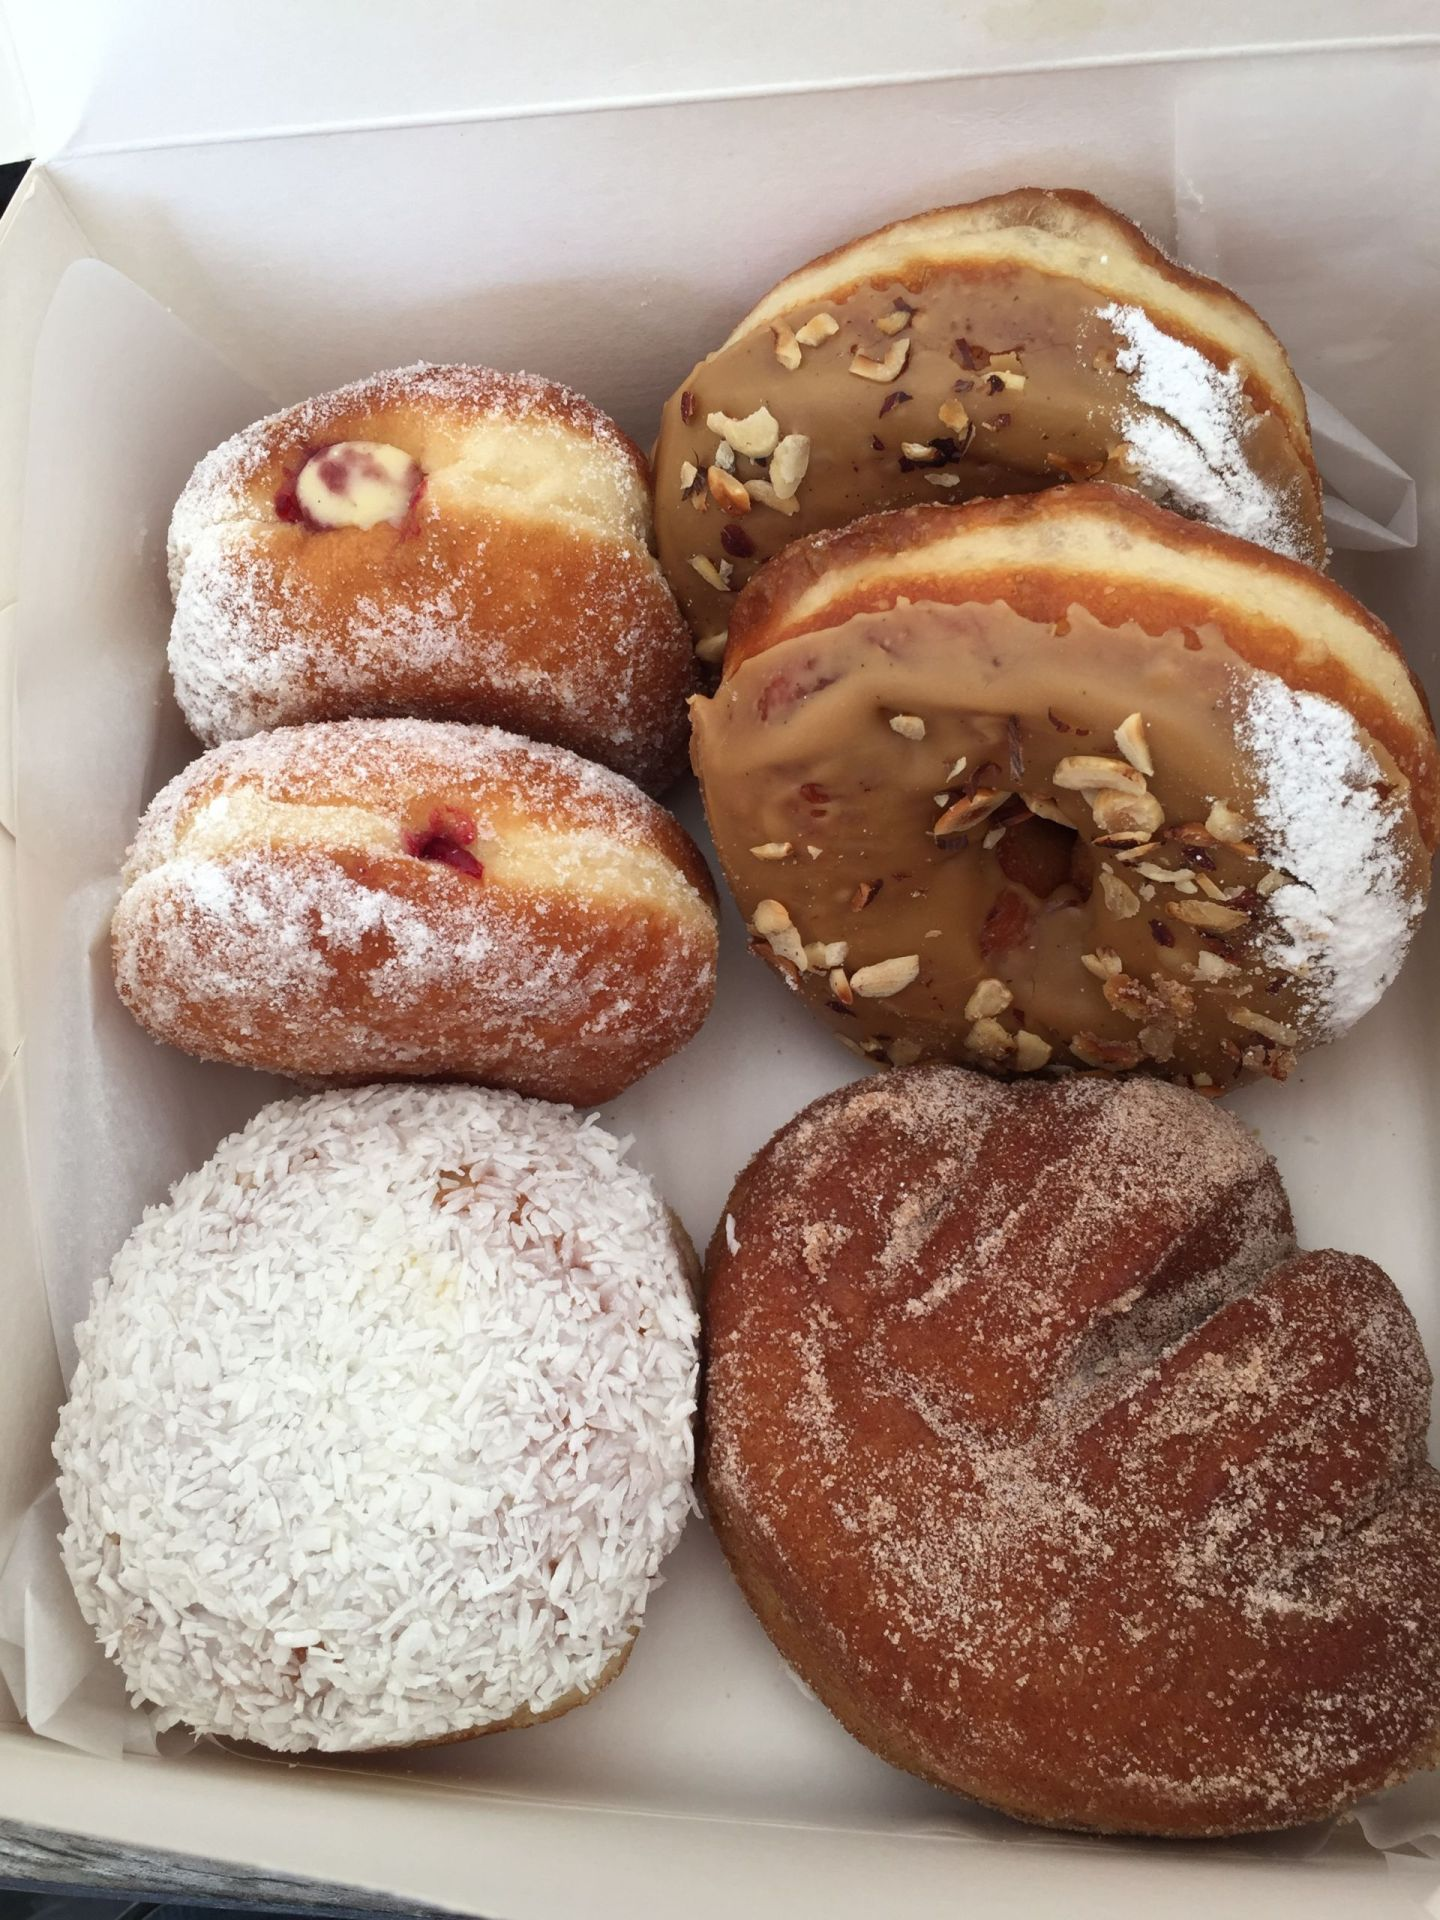 Pippin Doughnuts from Stroud Farmers Market